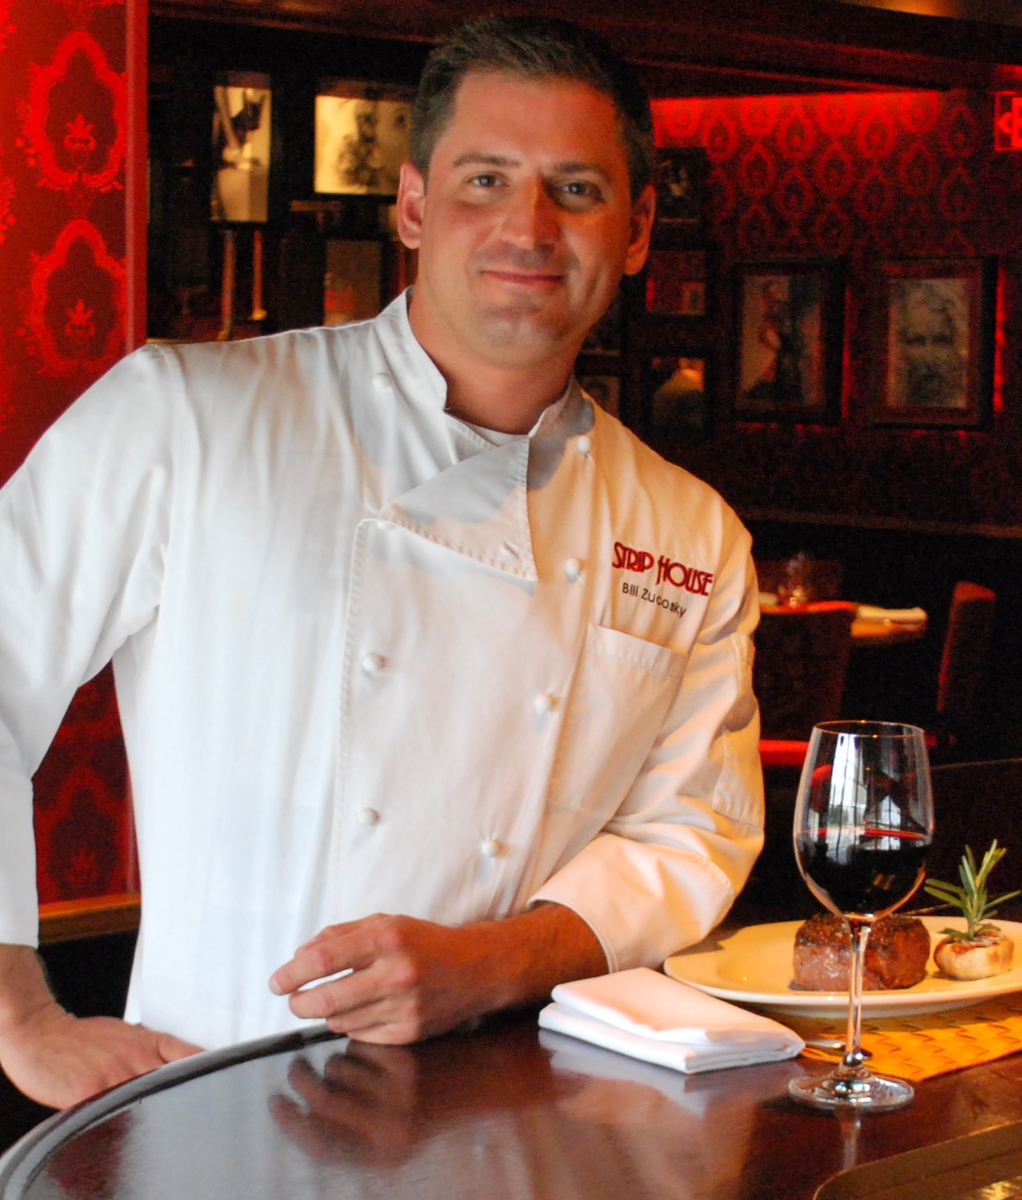 Bill Zucosky, Executive Chef